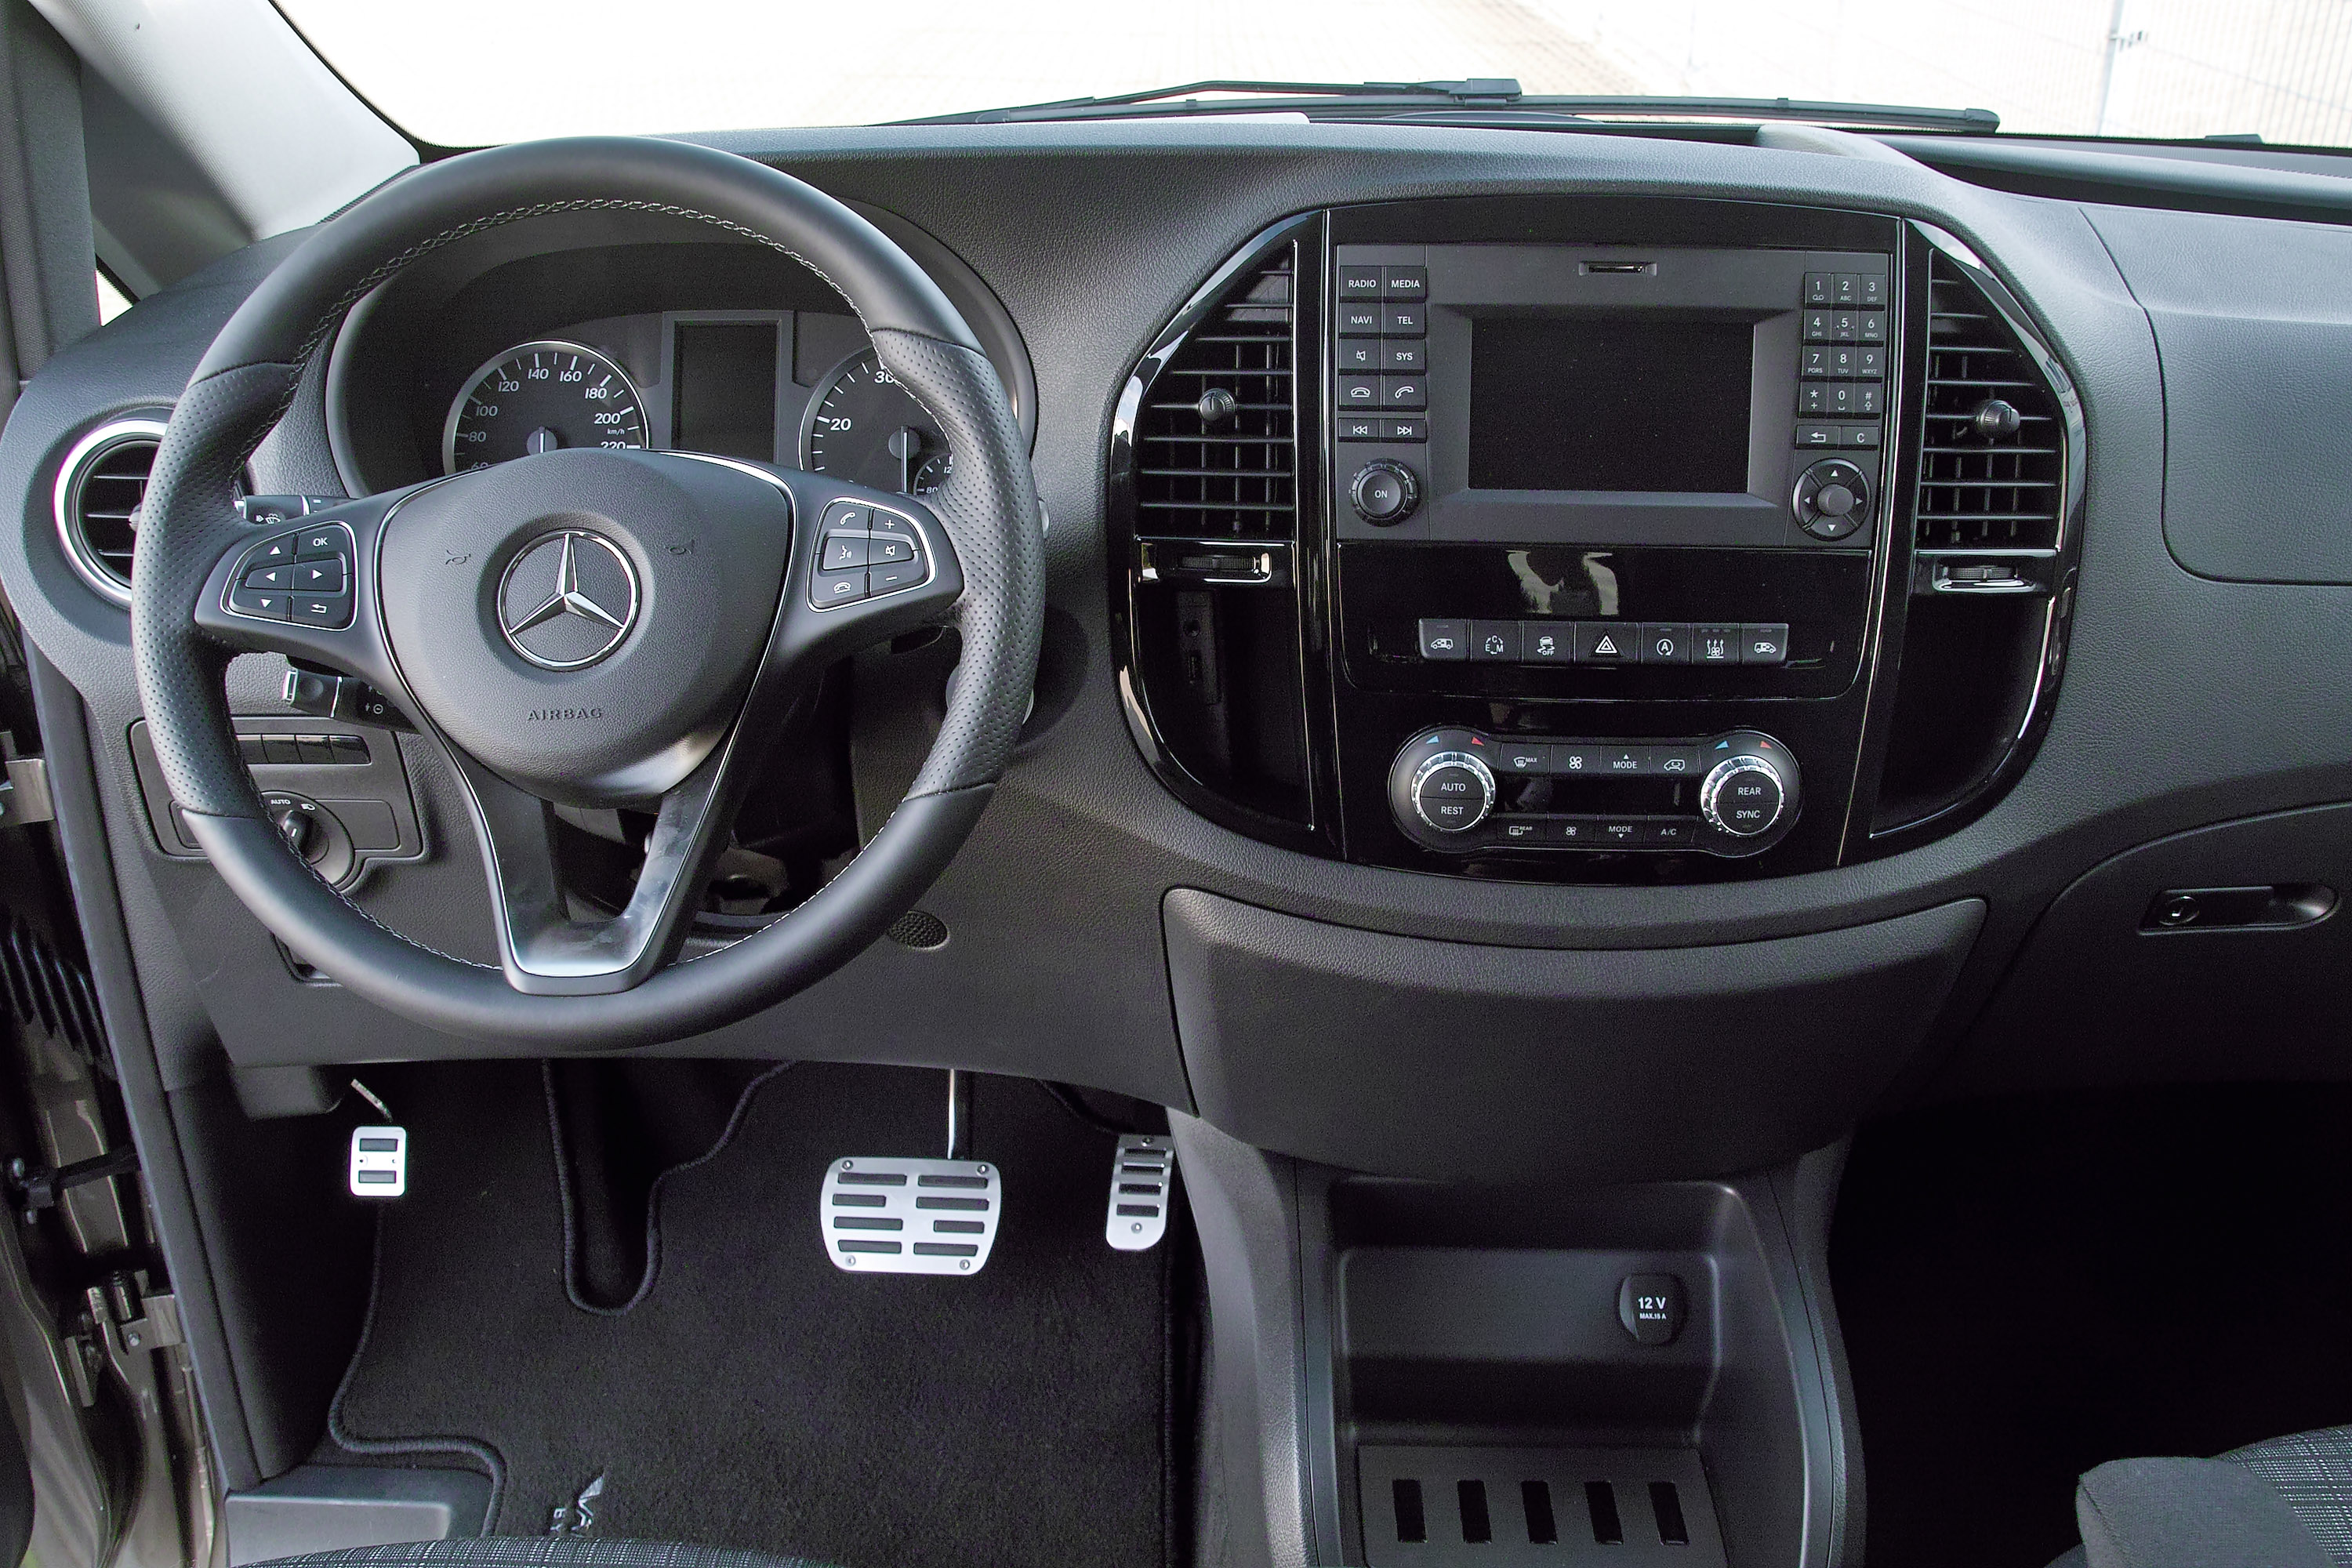 Mercedes vito upgraded by hartmann tuning for Auto interieur tuning